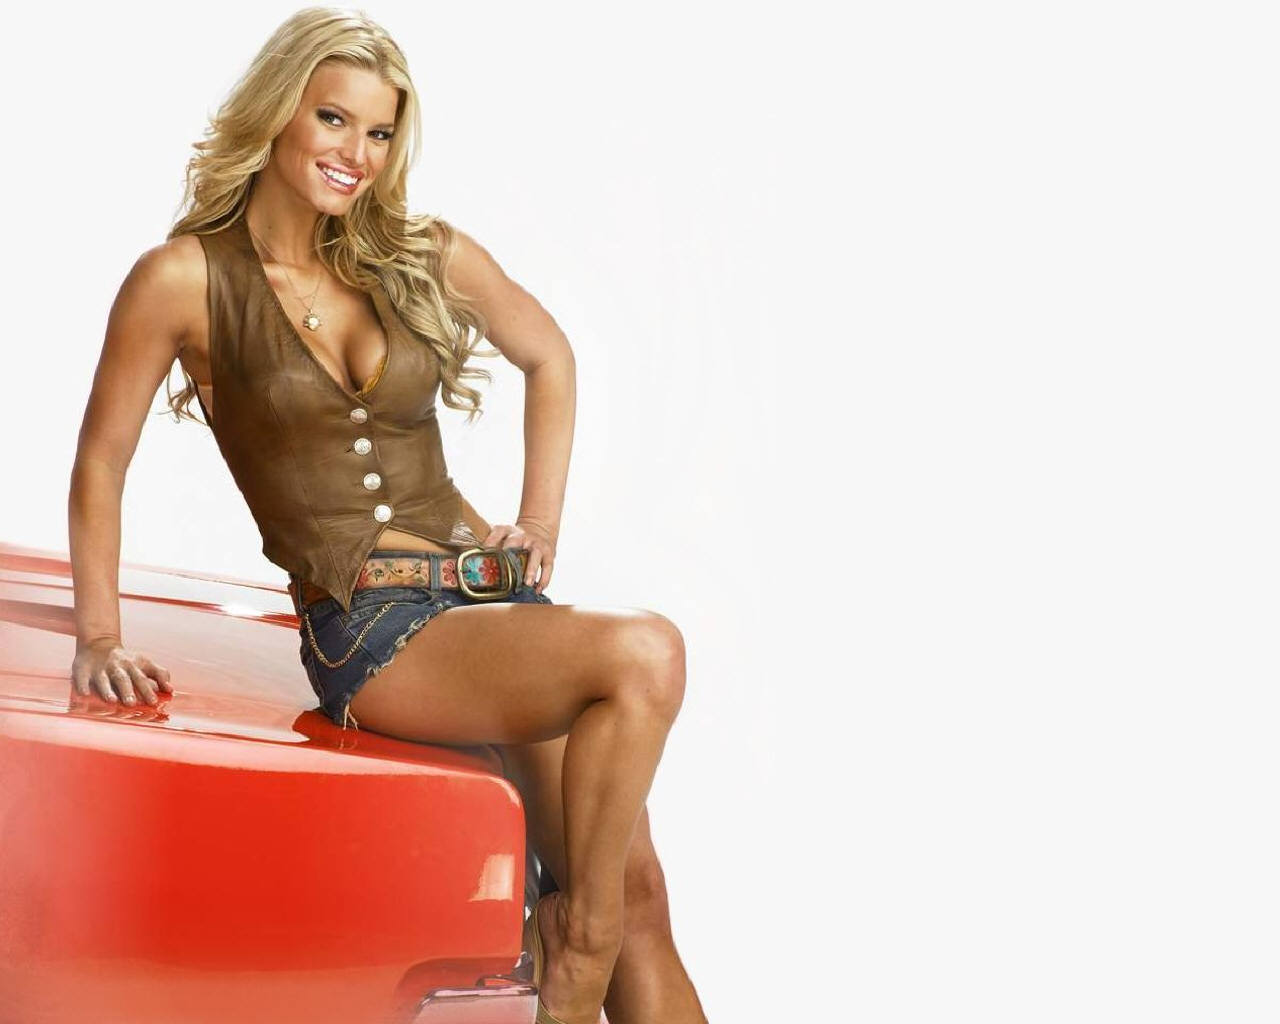 Jessica simpson bikini wallpapers